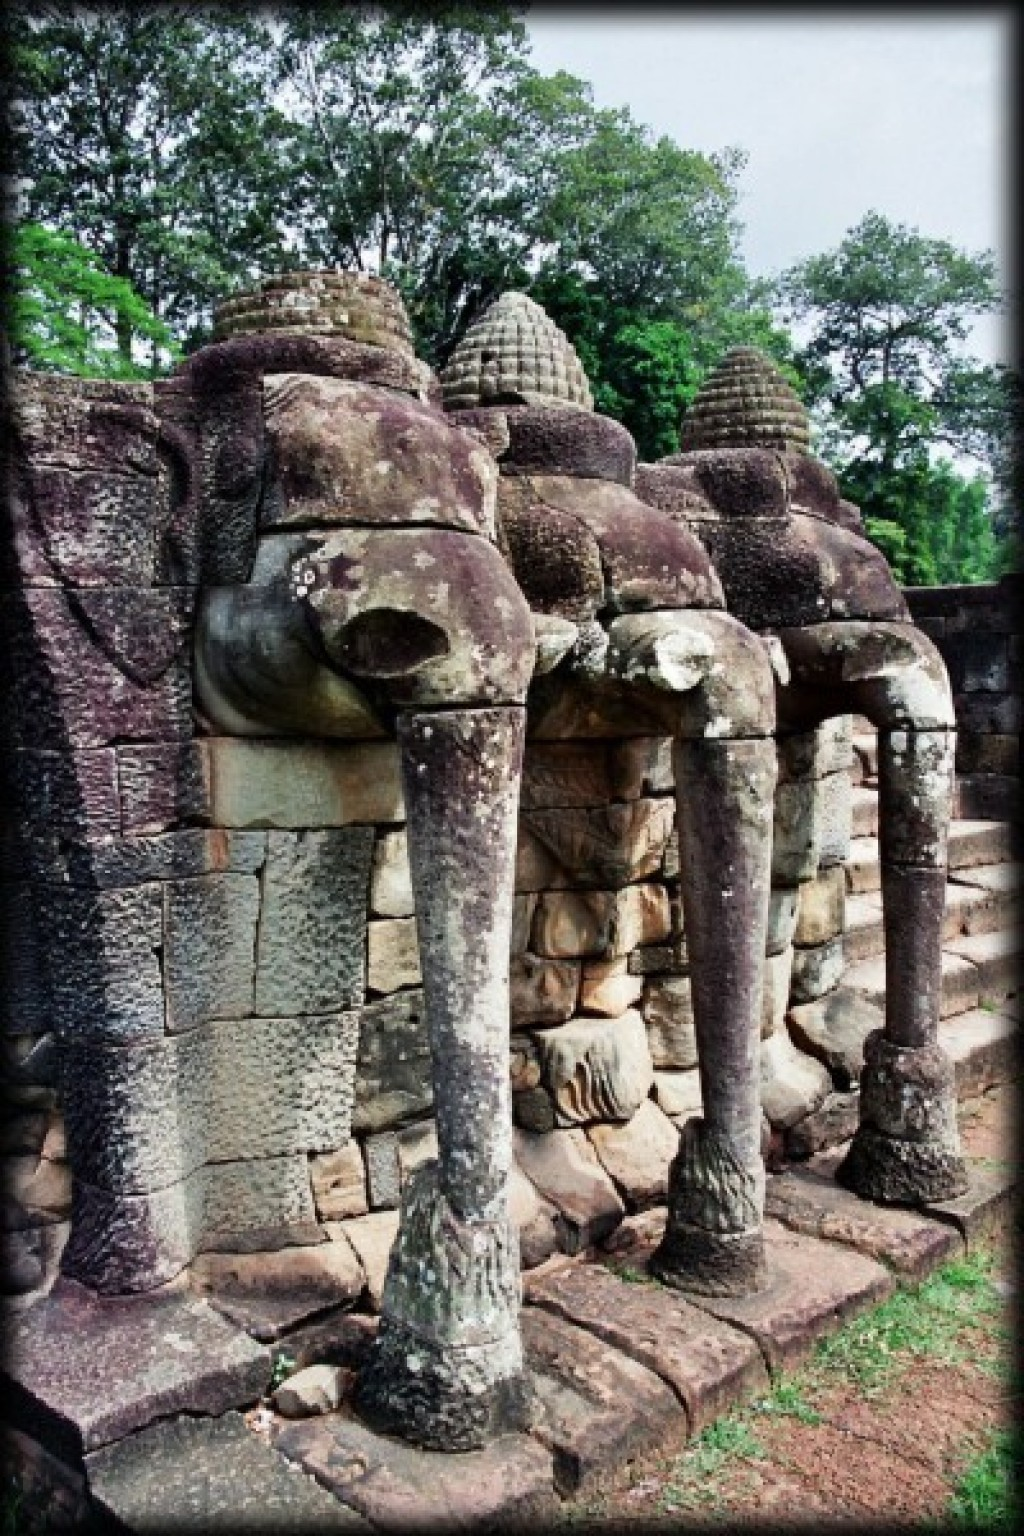 The Bayon is part of Angkor Thom.  Dedicated to Buddhism, it was built between 1181-1219.